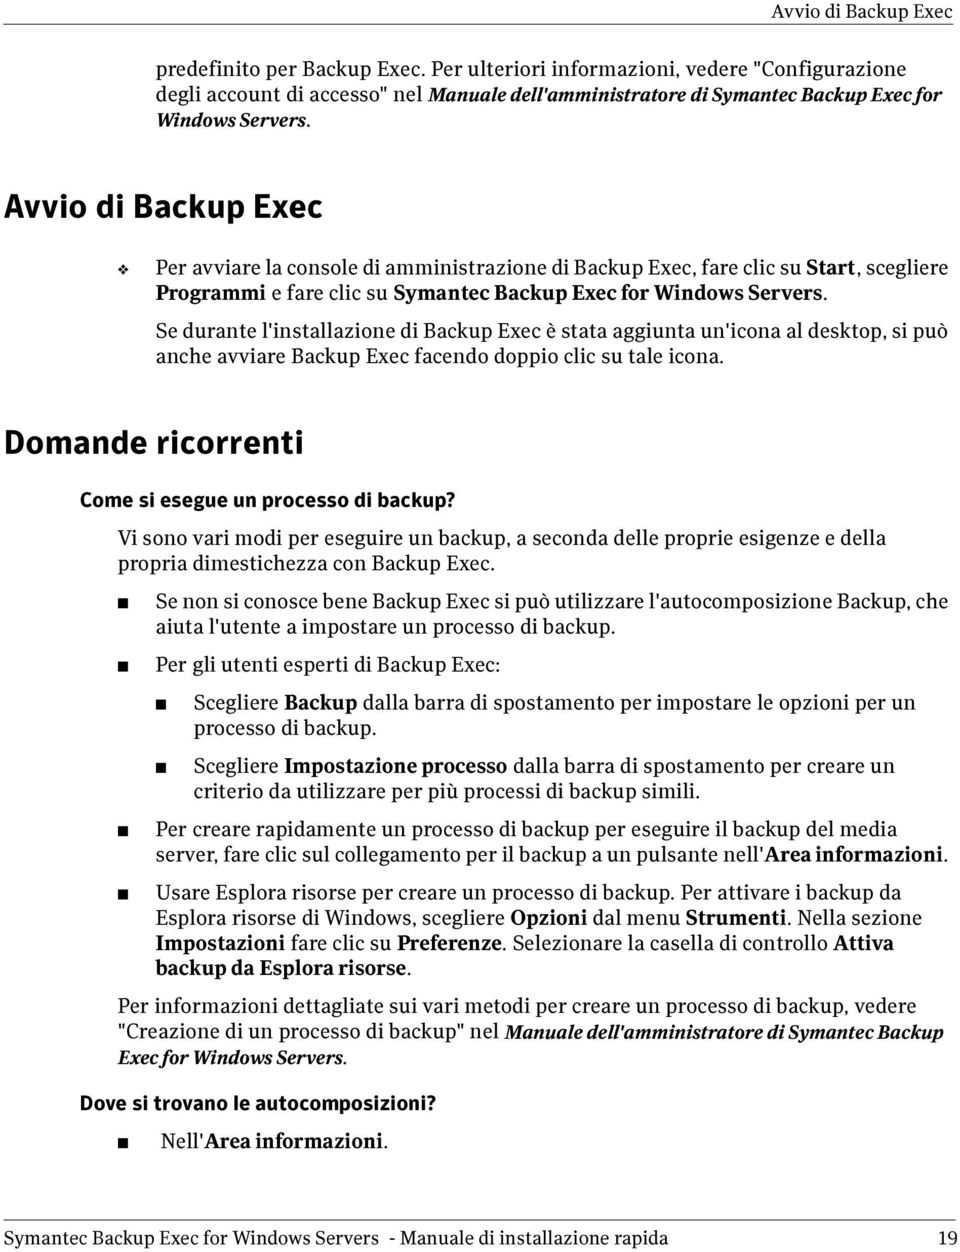 Avvio di Backup Exec Per avviare la console di amministrazione di Backup Exec, fare clic su Start, scegliere Programmi e fare clic su Symantec Backup Exec for Windows Servers.